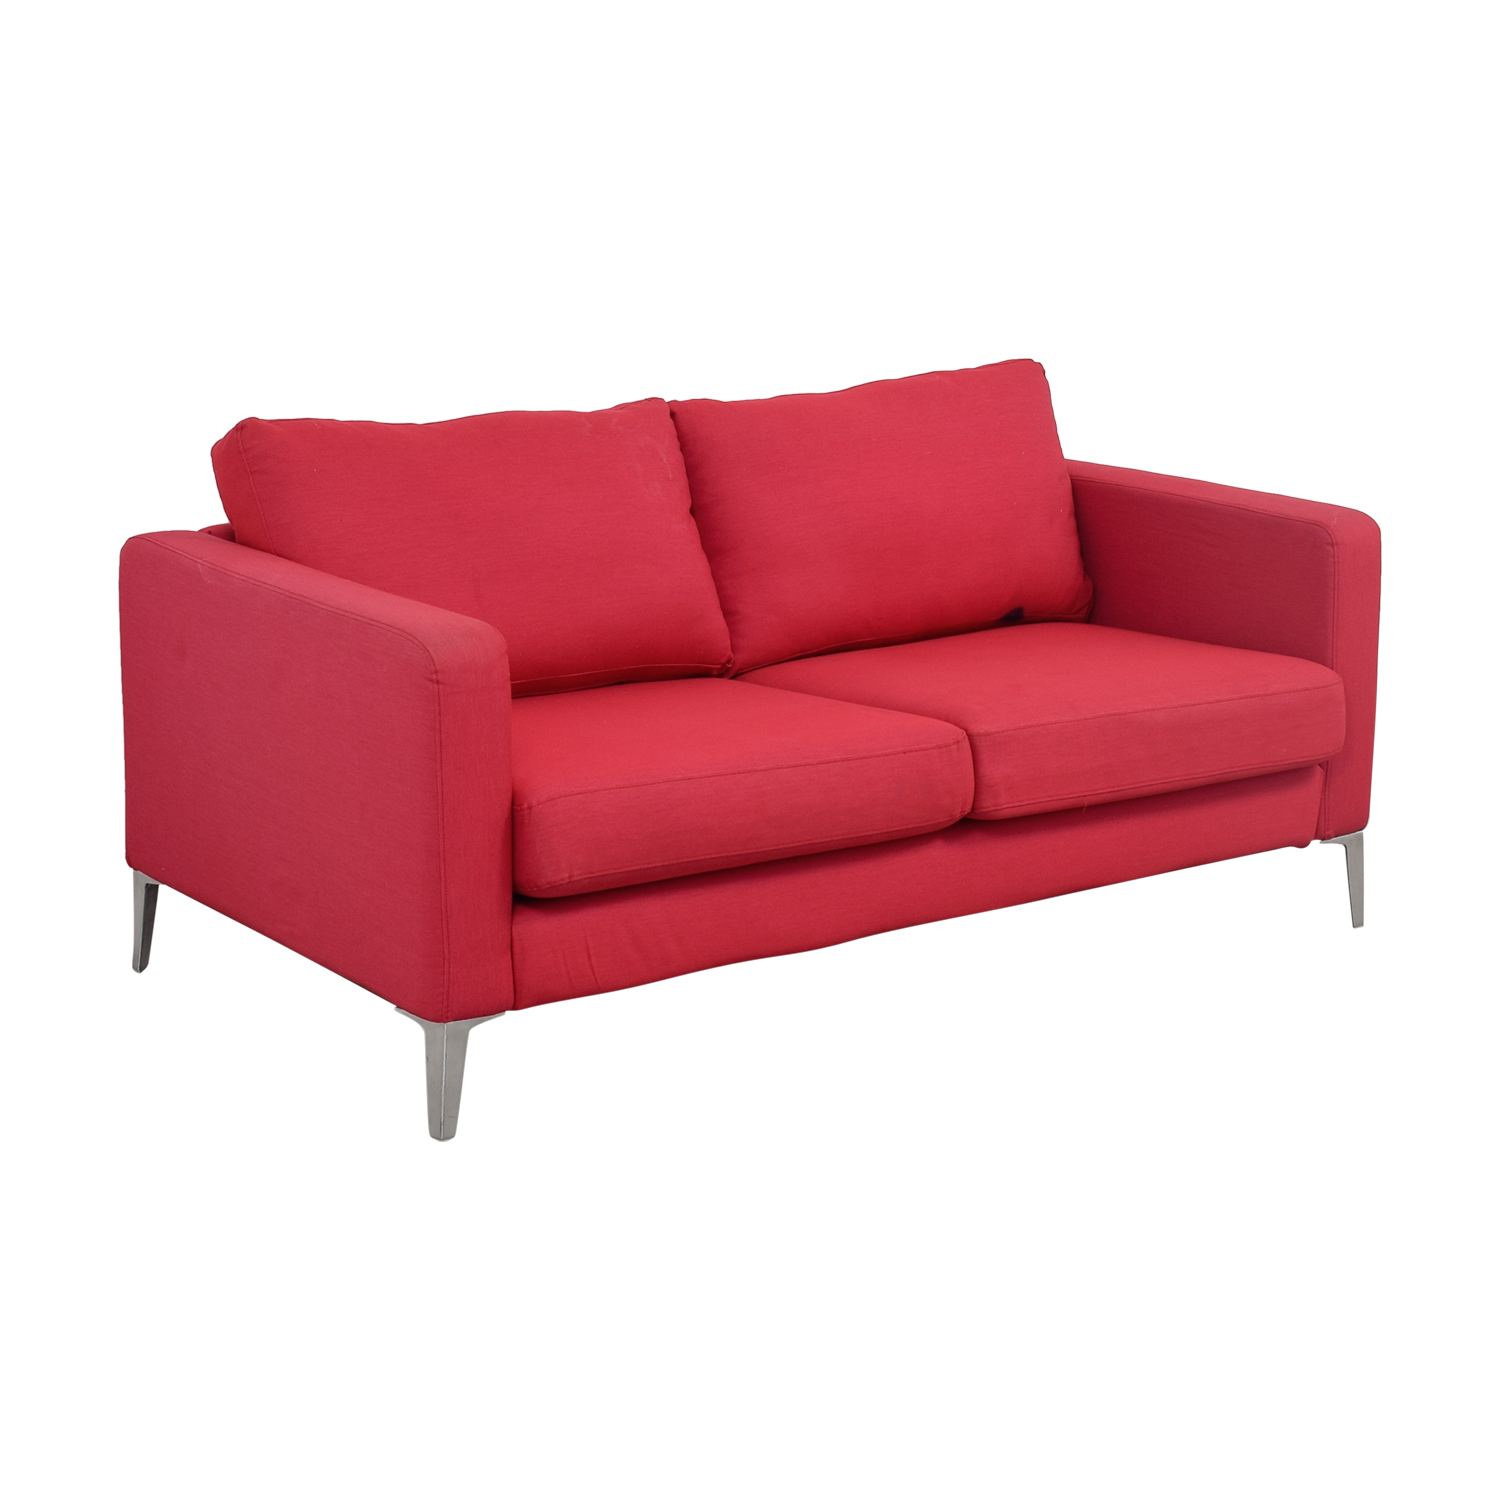 81 off ikea ikea red two cushion love seat sofas. Black Bedroom Furniture Sets. Home Design Ideas